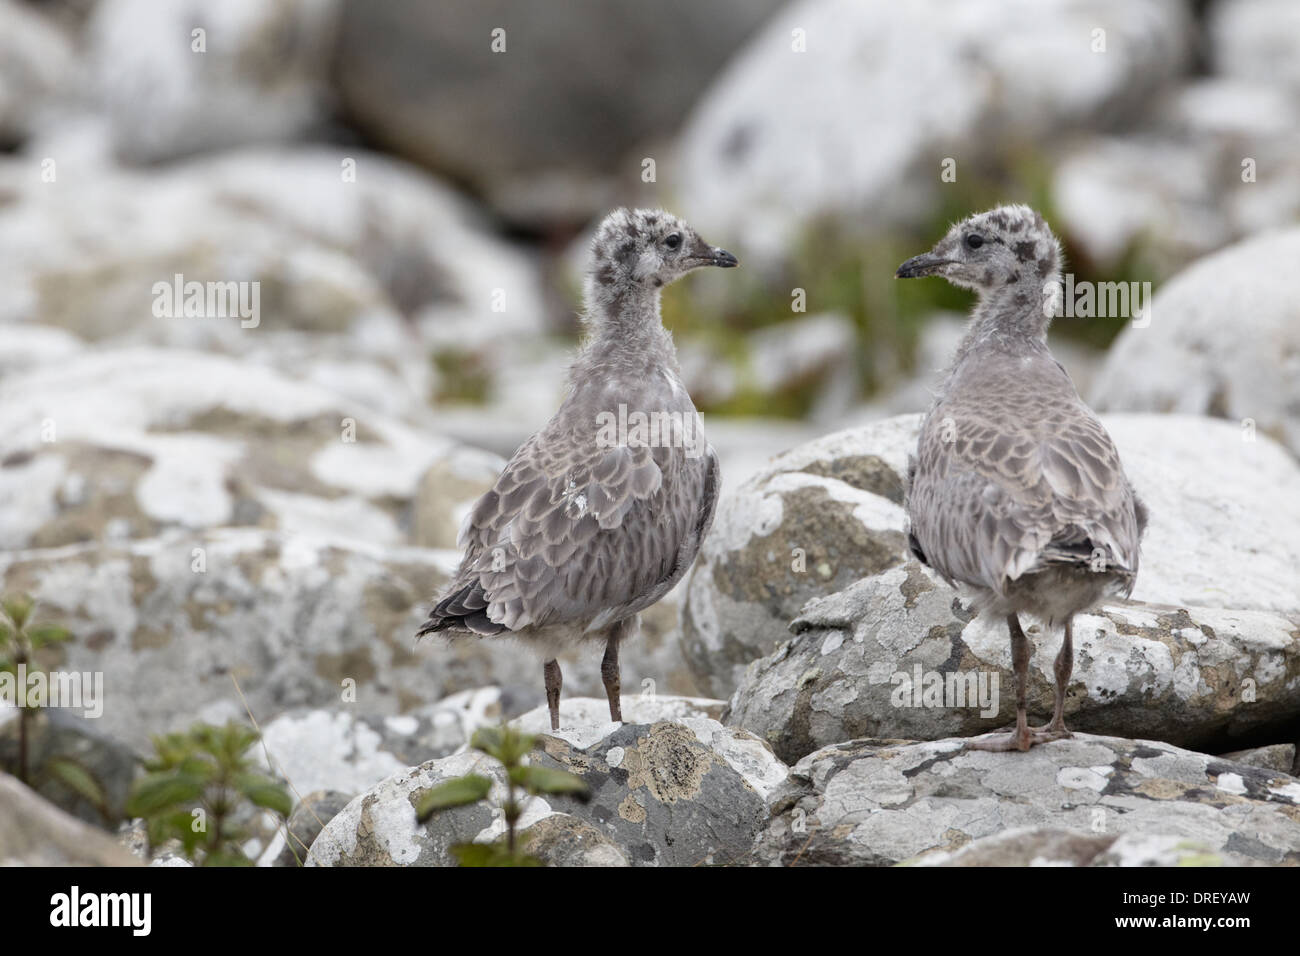 Common gull (Larus canus) young waiting among rocks for parent to return with food - Stock Image